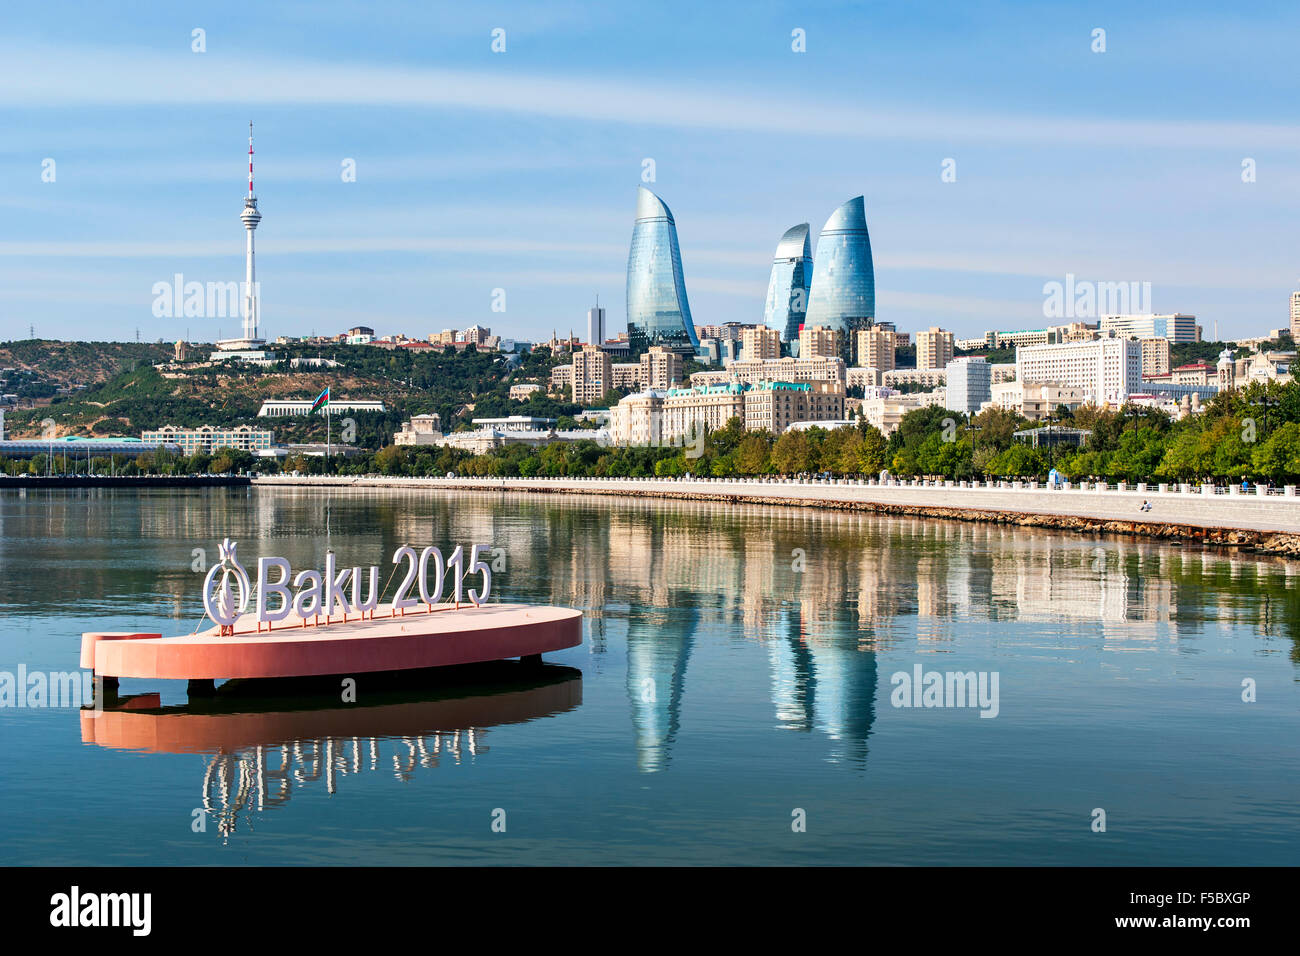 Baku Bay and the Baku skyline at dawn. The sign is to highlight the European games held in Baku in June 2015. - Stock Image